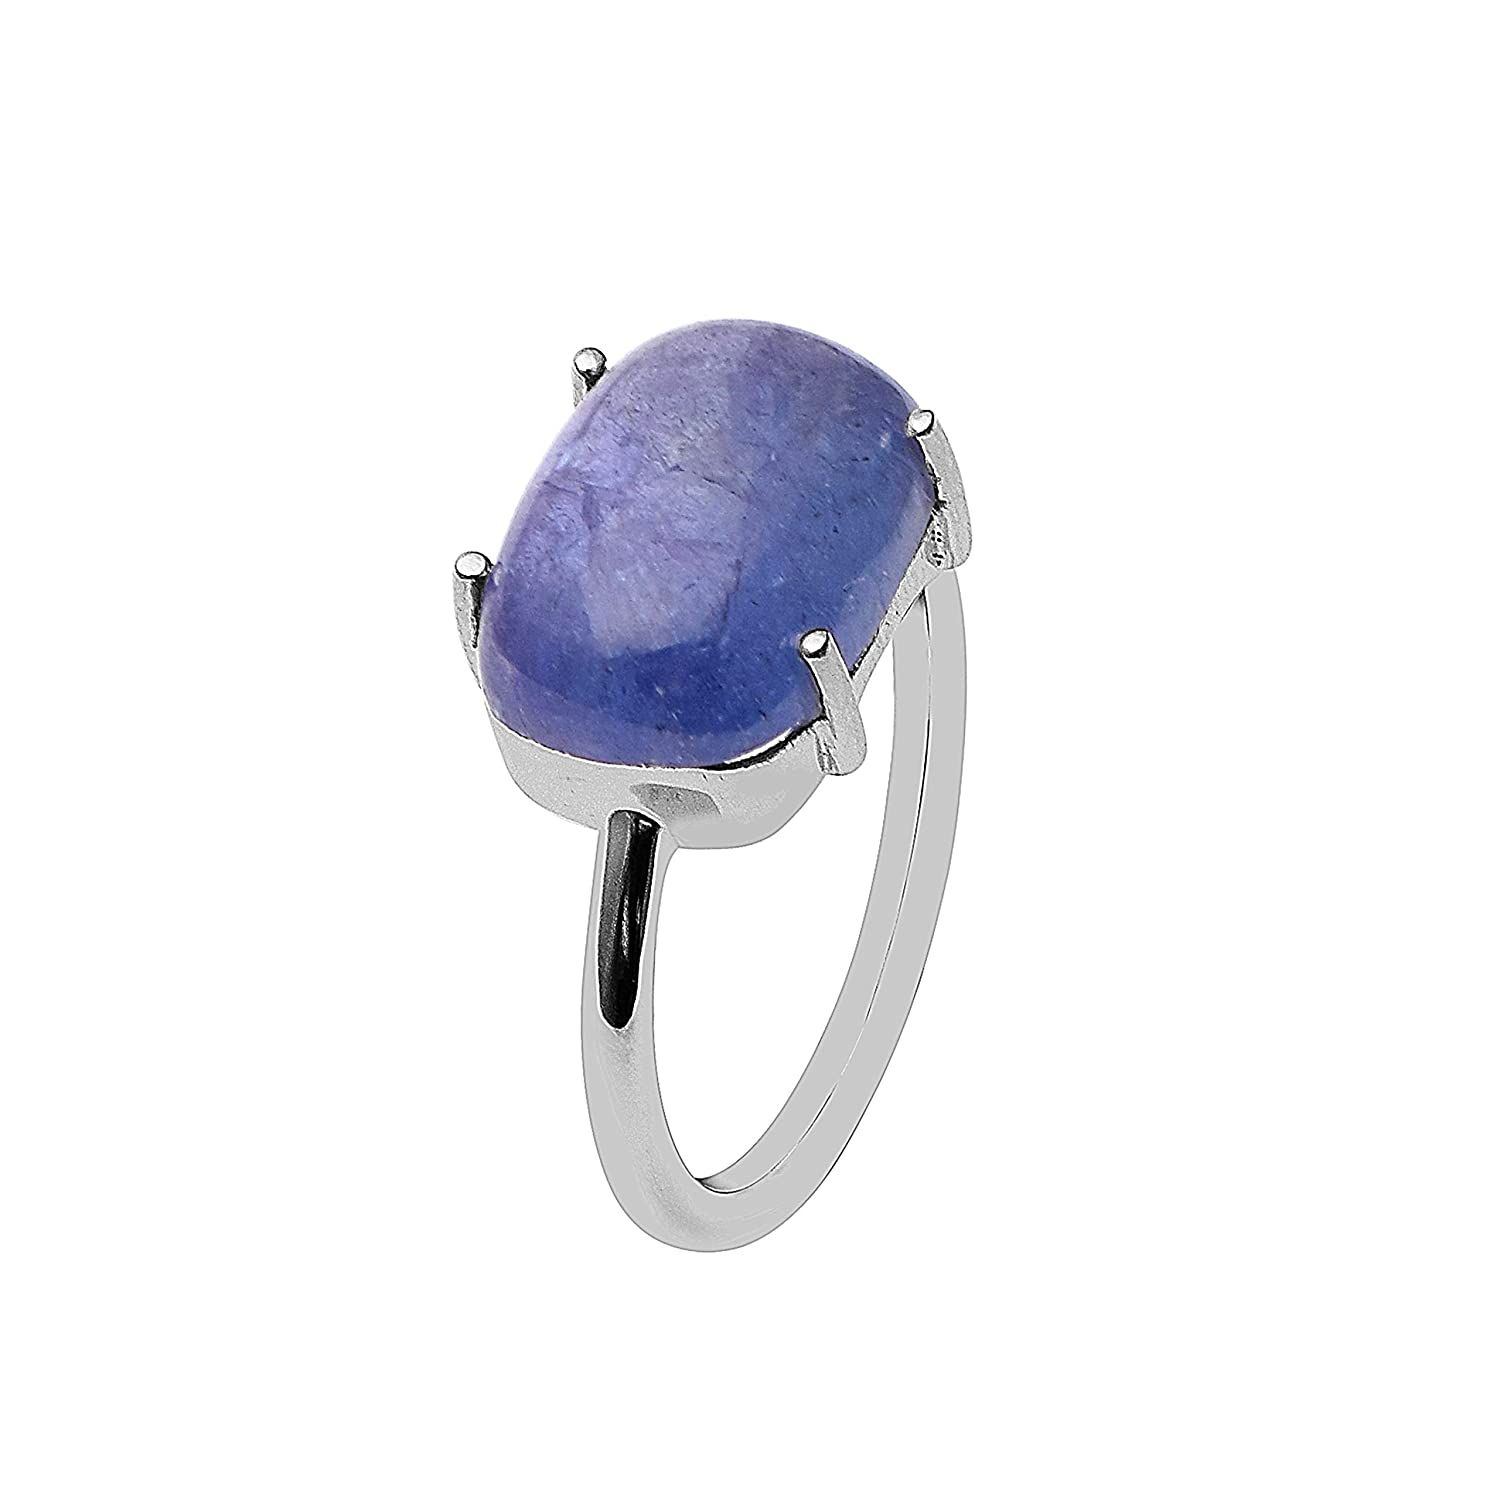 Solitaire Prong Set Rings 925 Sterling Silver Natural Tanzanite Single Stone Statement Promise Ring for His /& Her